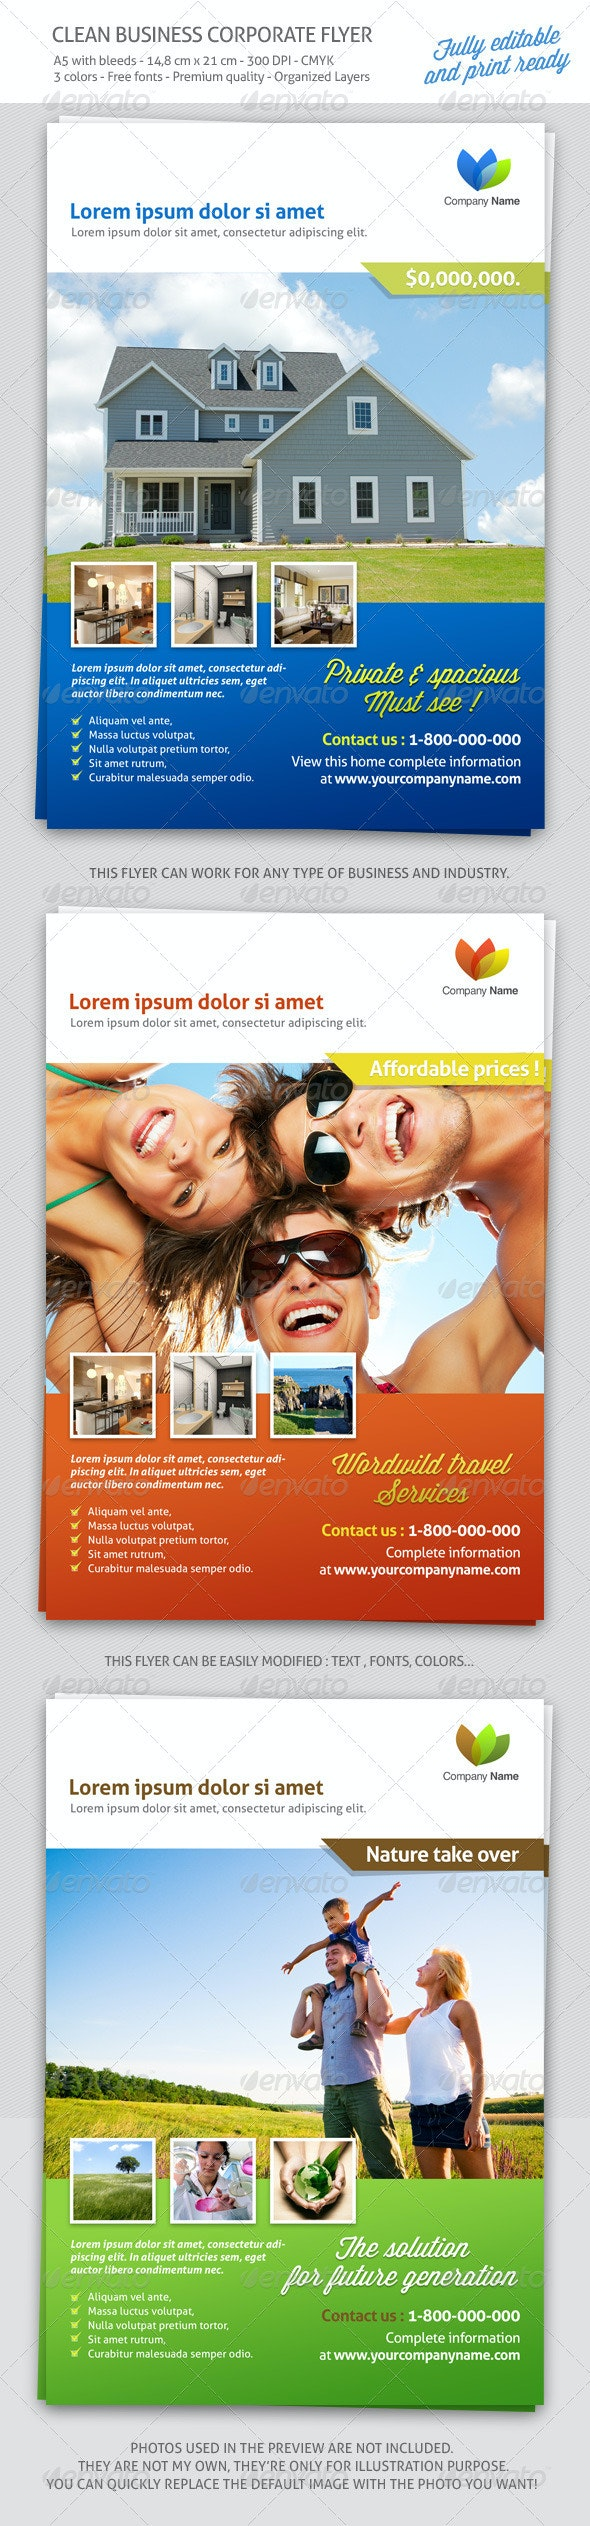 Clean Business Corporate flyer - Corporate Flyers